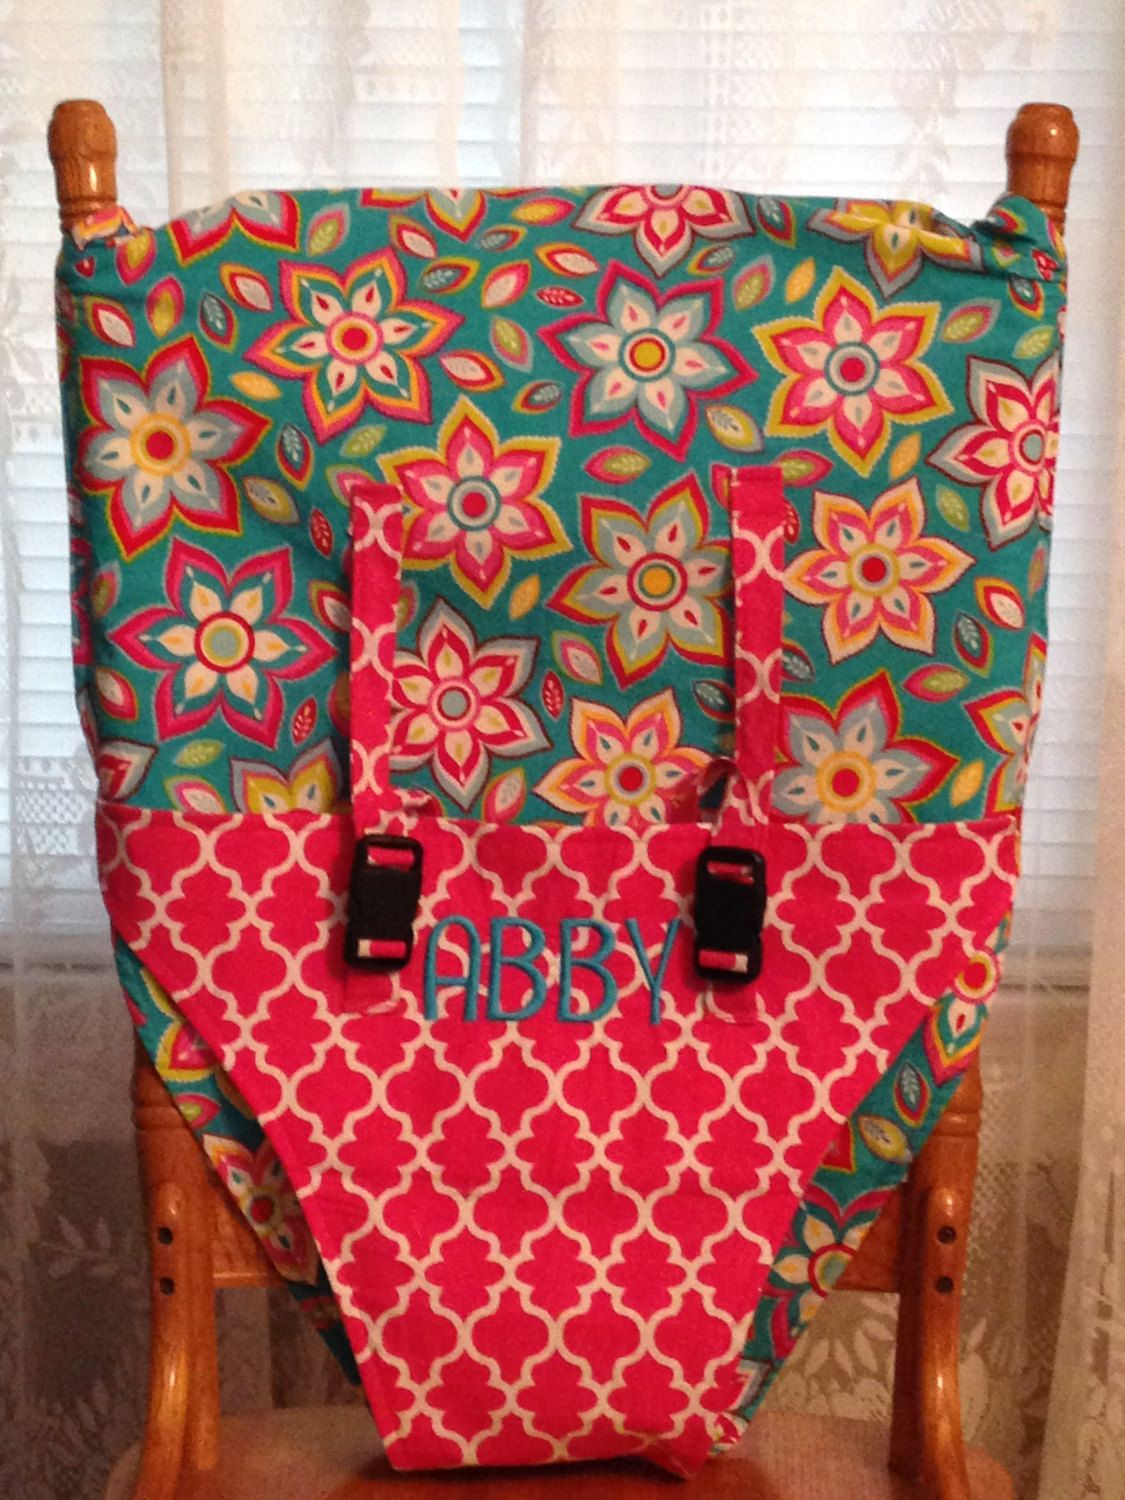 Portable Travel High Chair, Chair Sling, Or Chair Cover For Your Baby Or  Toddler